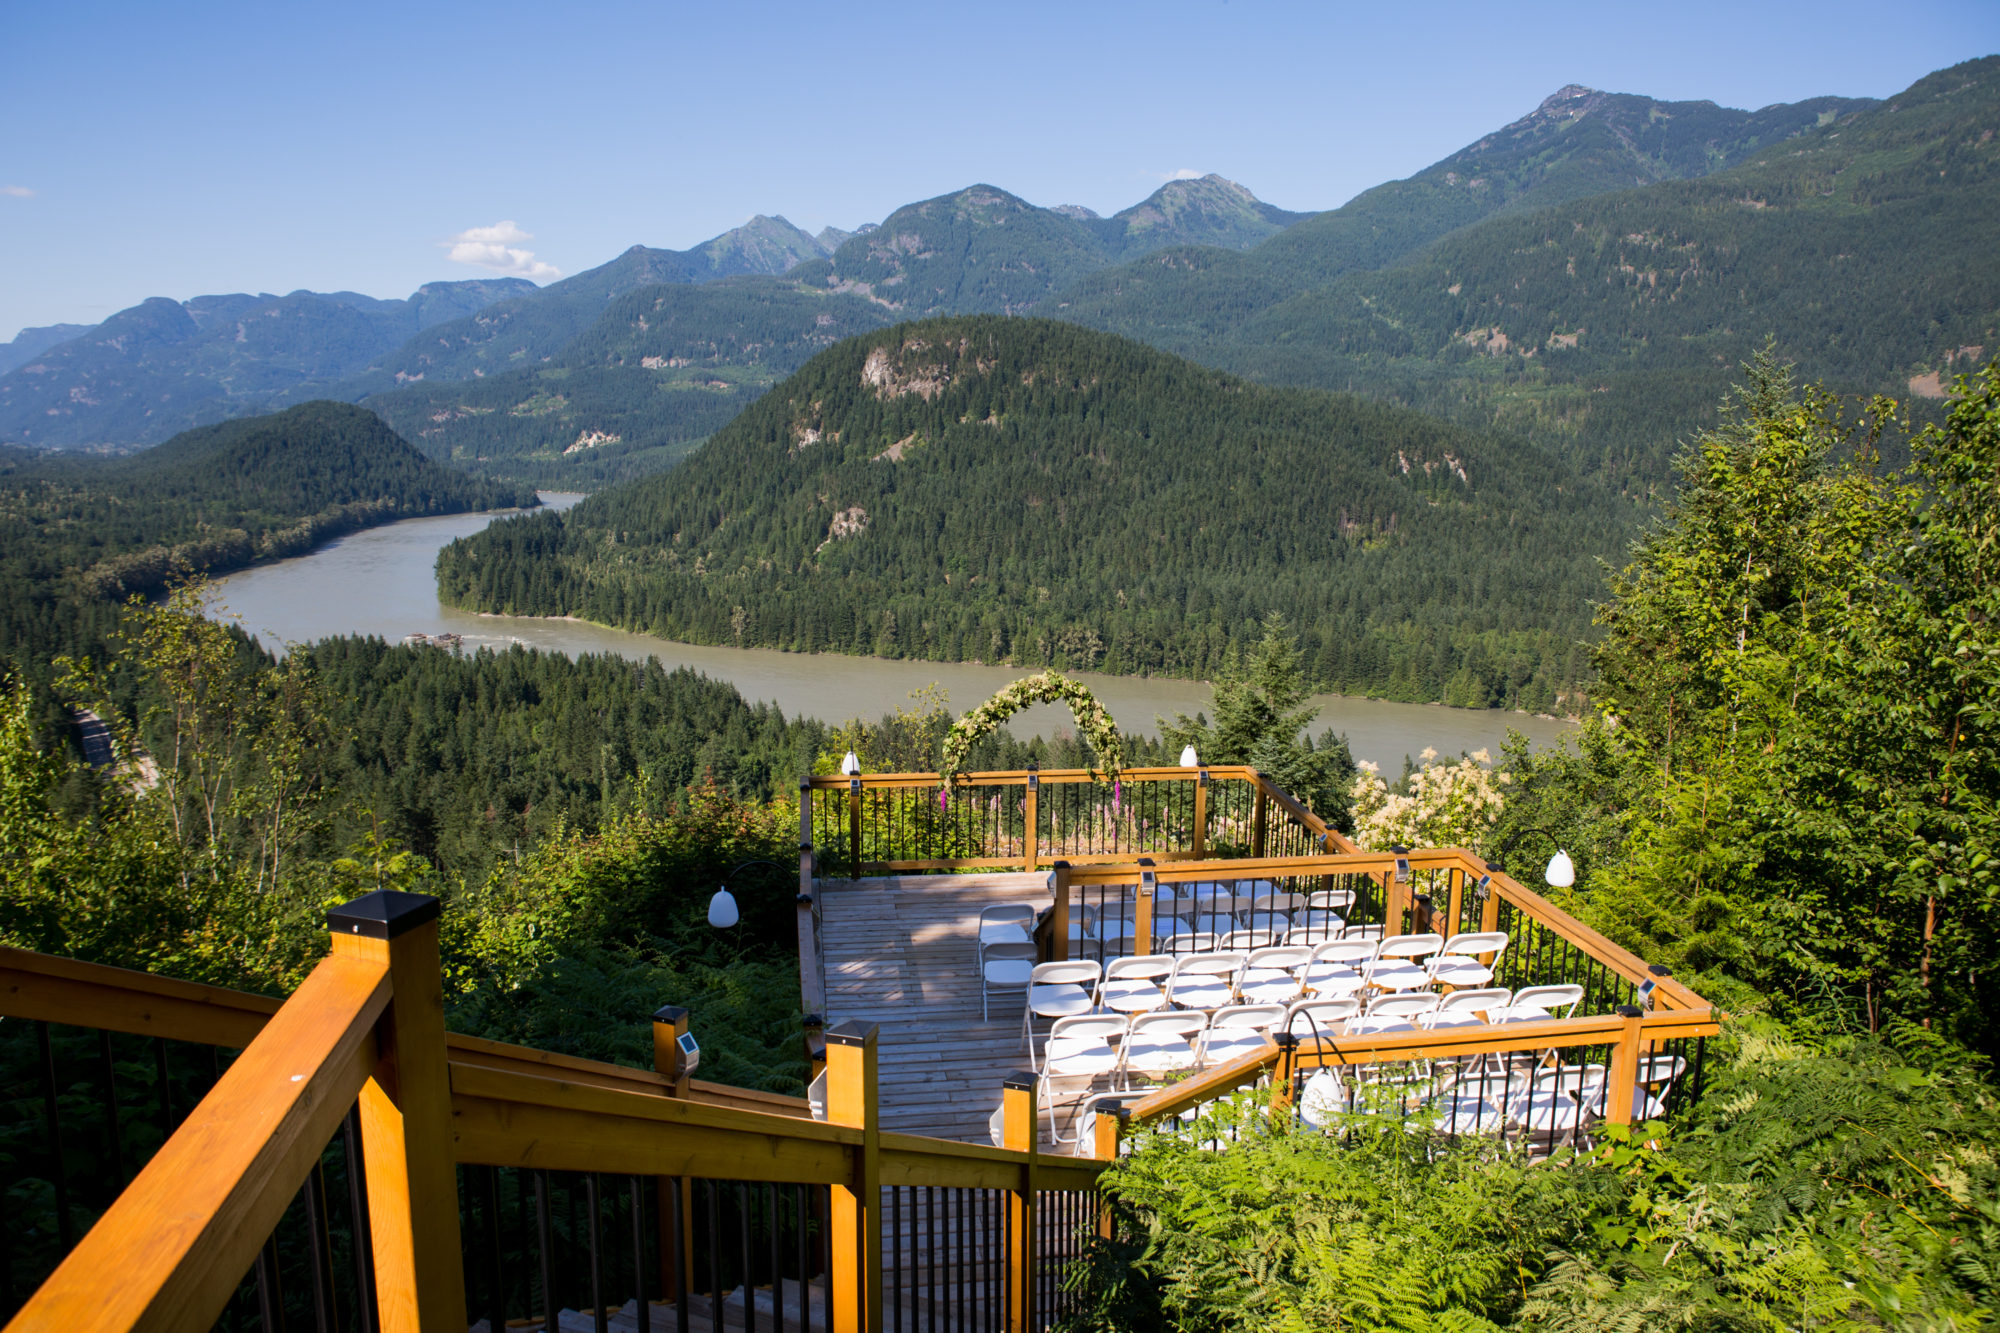 Outdoor Cliff Ceremony Hope Wedding British Columbia American Creek Lodge Zsuzsi Pal Photography